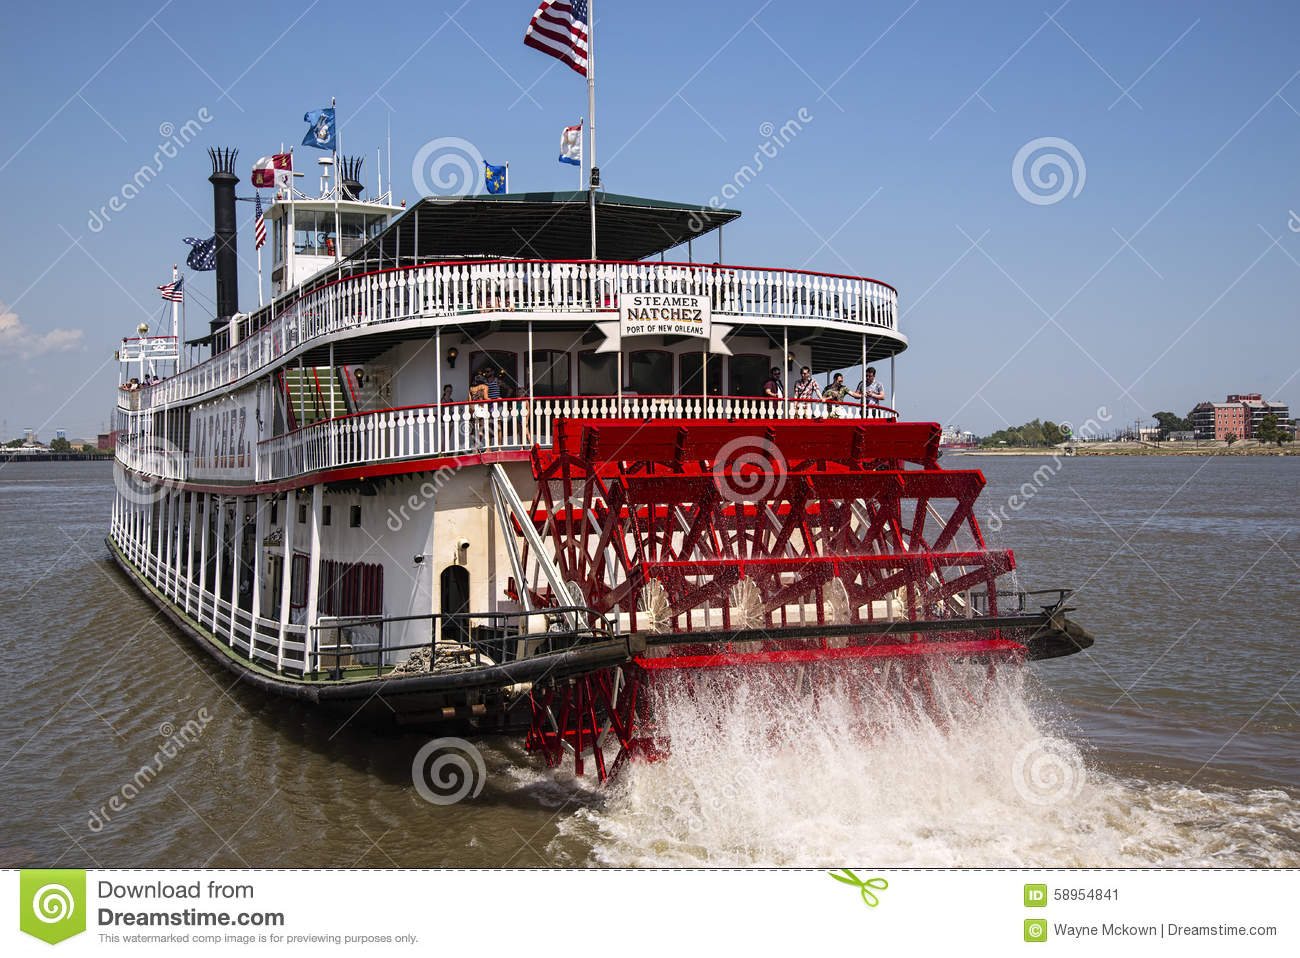 Steamboat natchez discount coupons